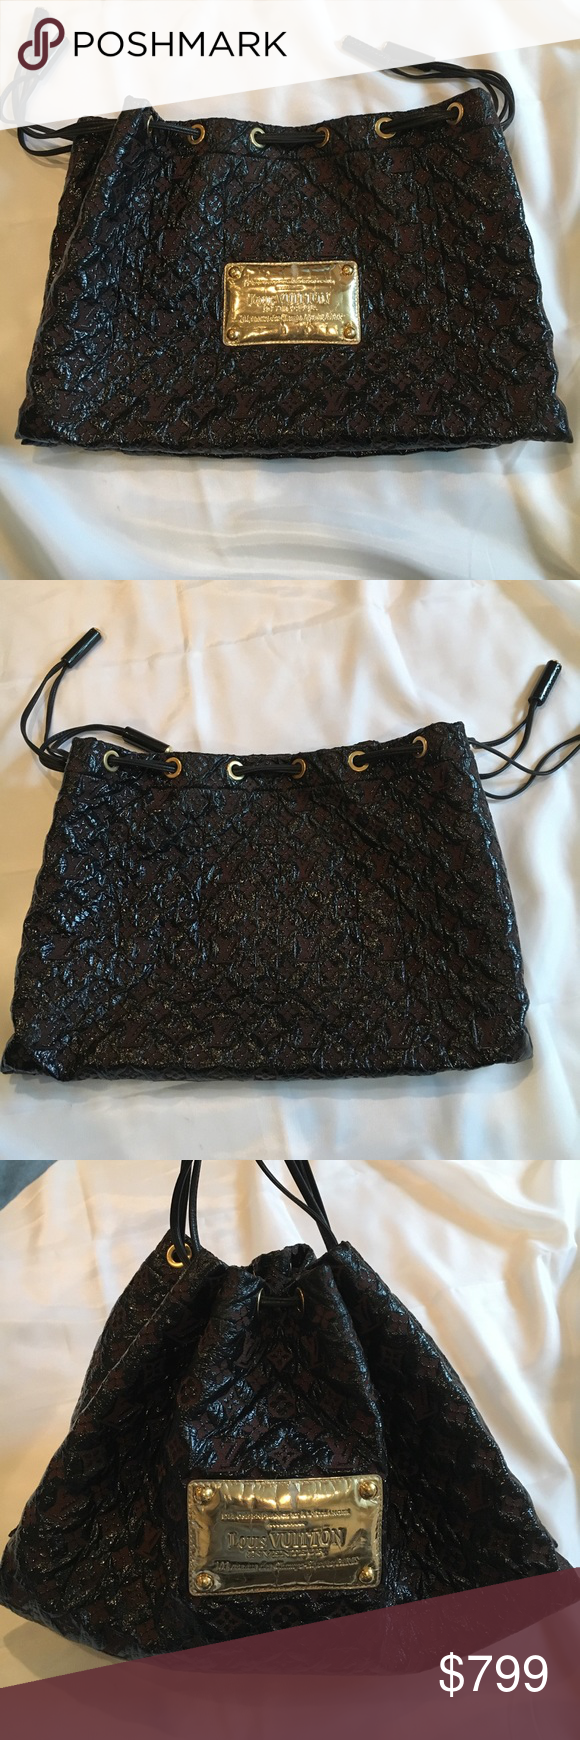 Louis Vuitton squishy inventeur Absolutely gorgeous Louis Vuitton squishy  purse. Hard to find. Black f0df6c204c700